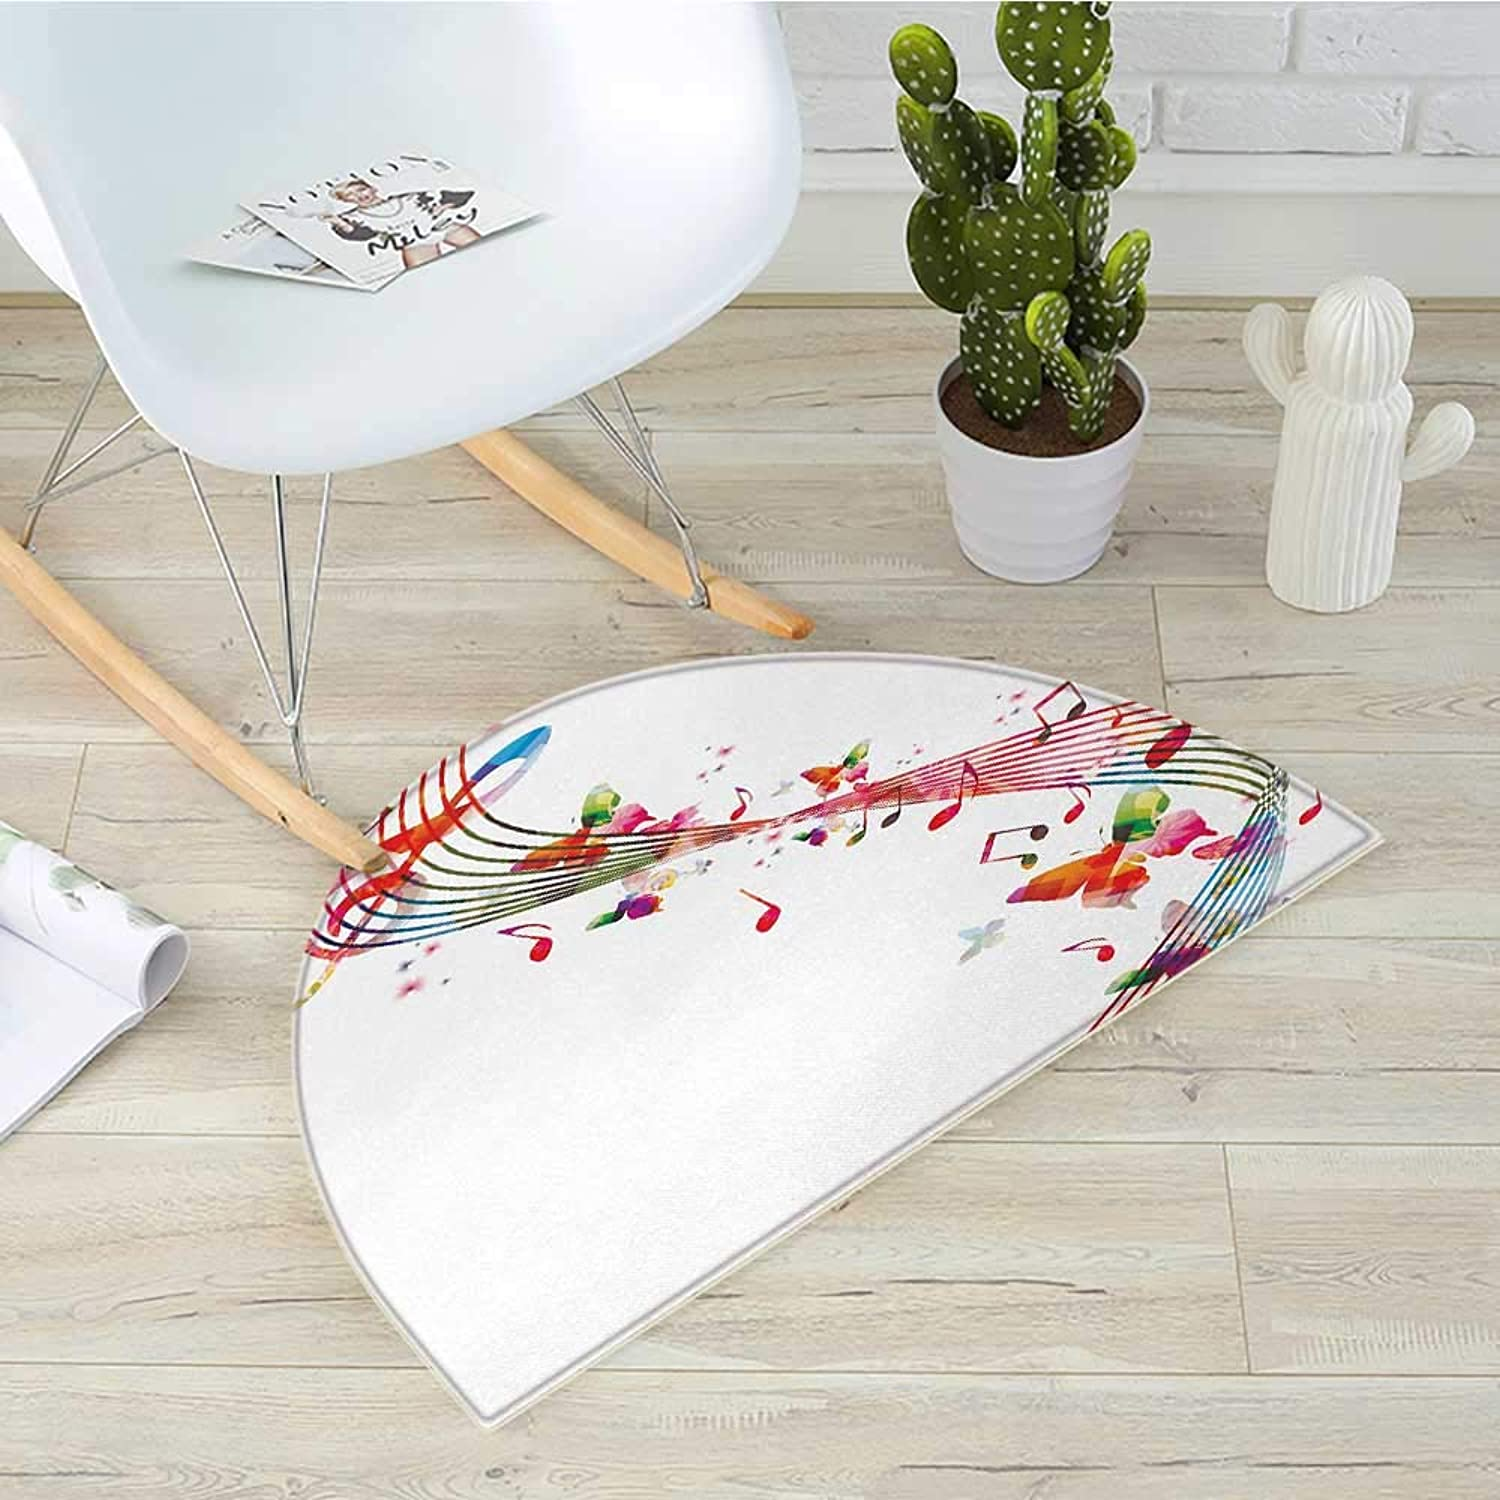 Music Semicircular Cushioncolorful Artwork with Music Notes Butterflies Springtime Party Entry Door Mat H 39.3  xD 59  Multicolor